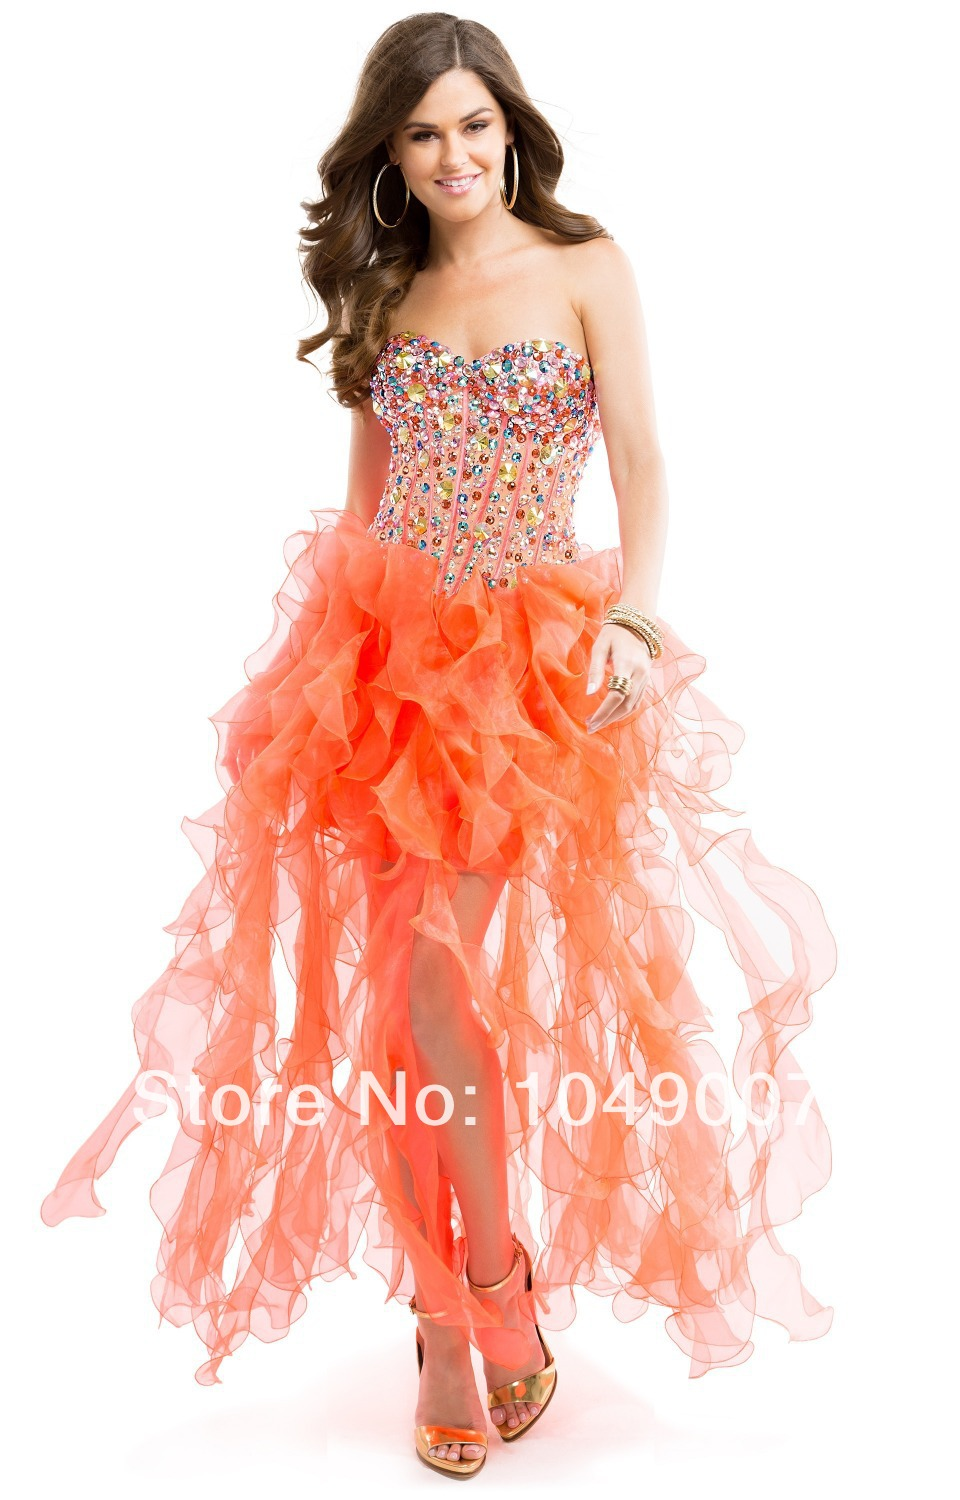 the gallery for gt neon orange prom dresses 2014